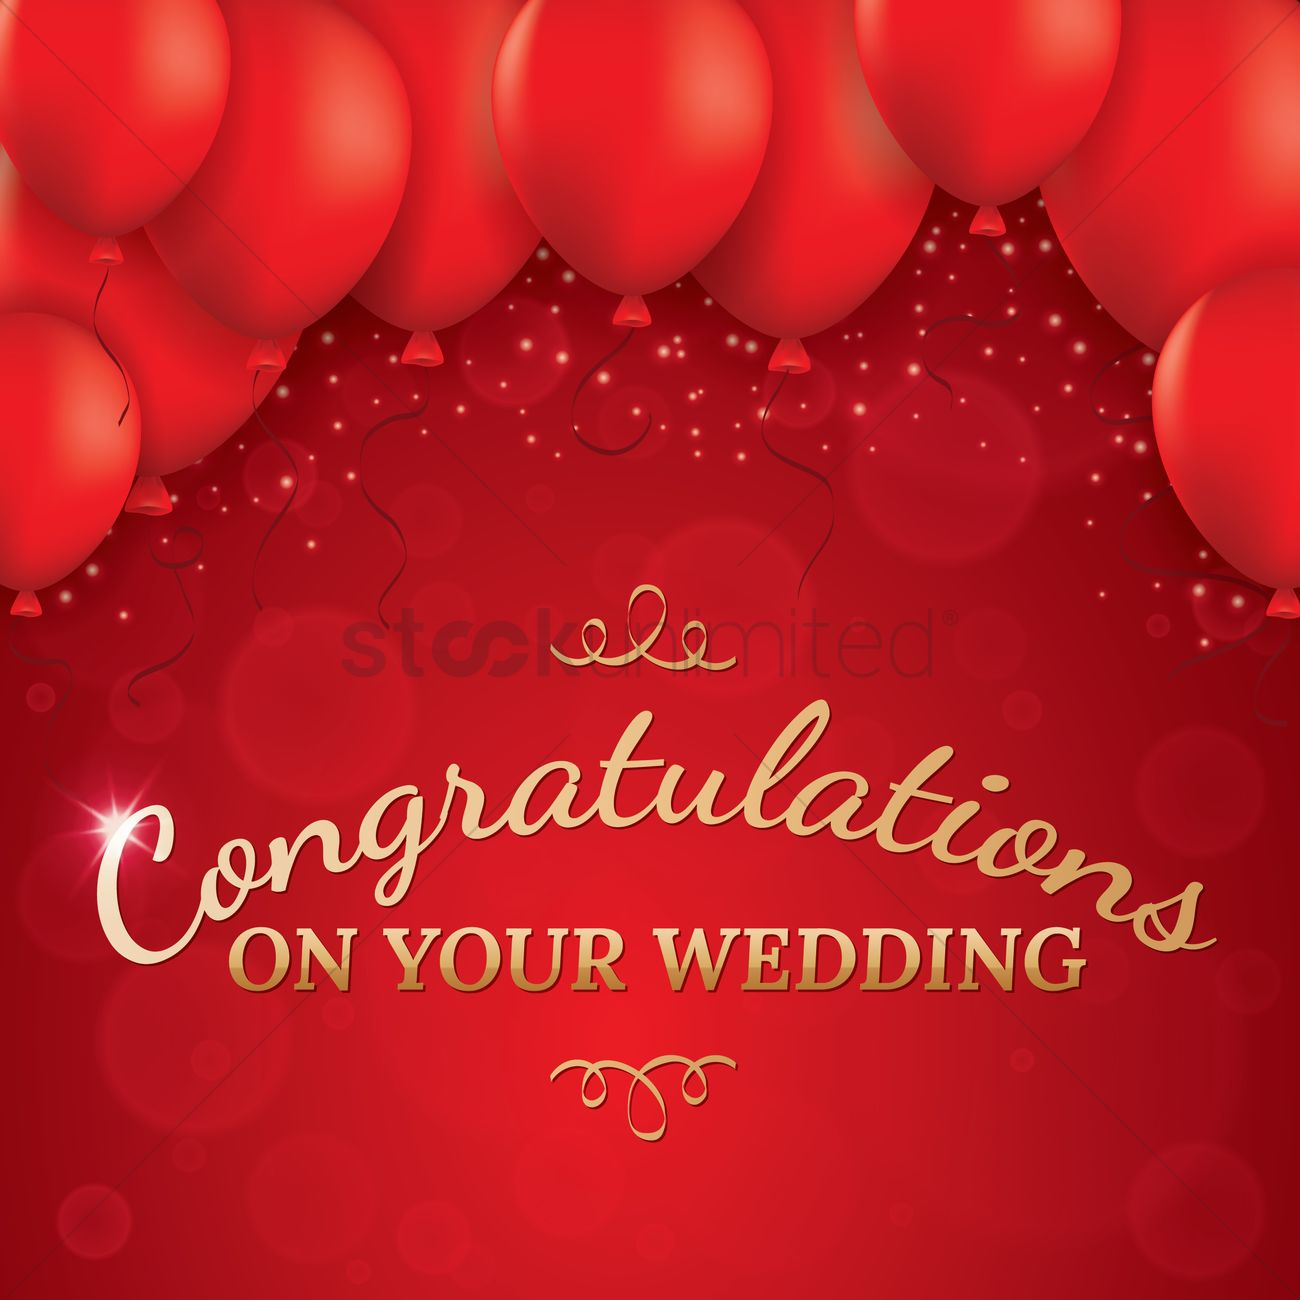 Wedding Greeting Card Vector Image 1610022 Stockunlimited